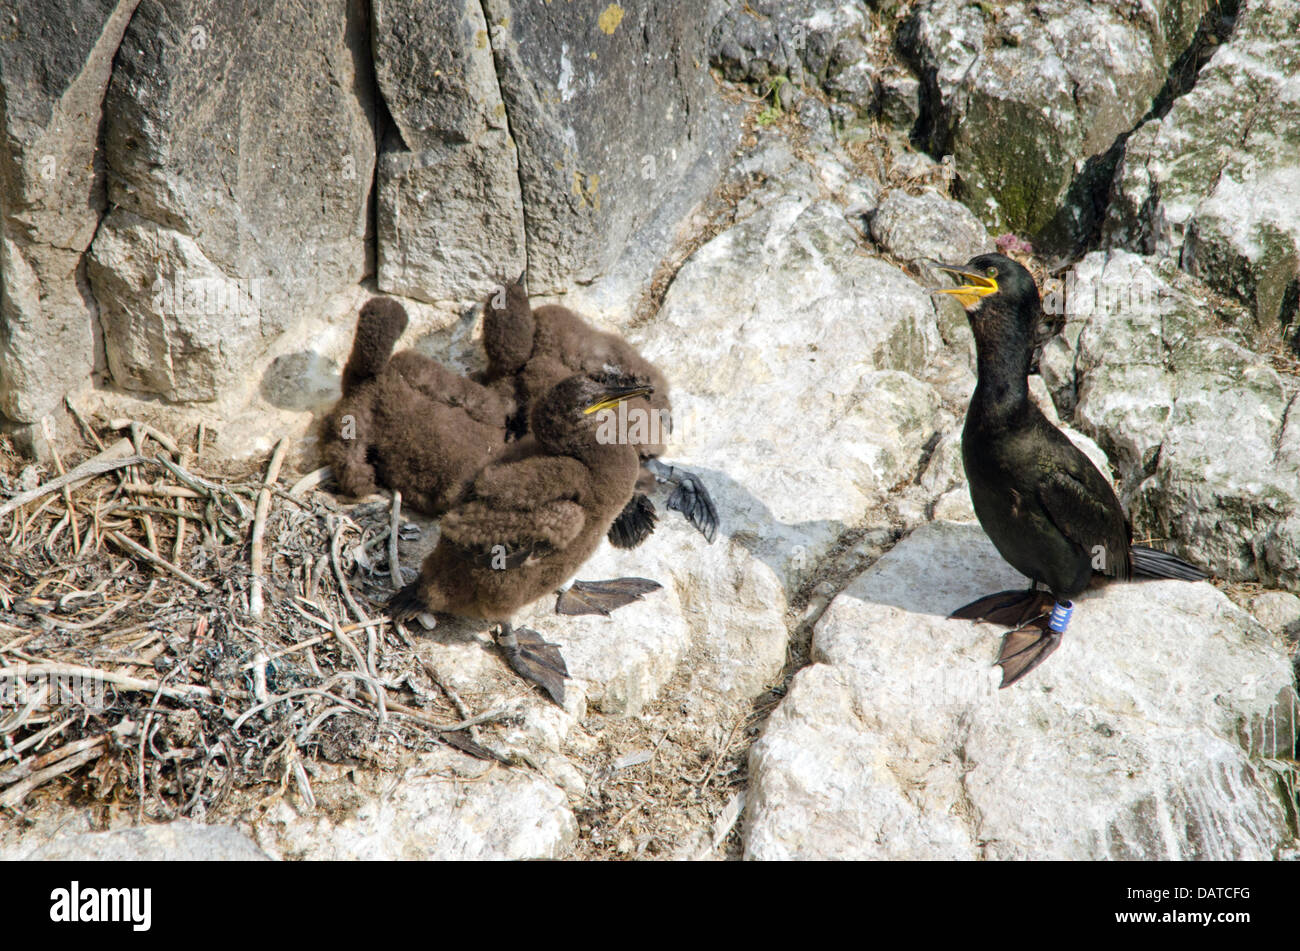 Shag and juveniles - Stock Image